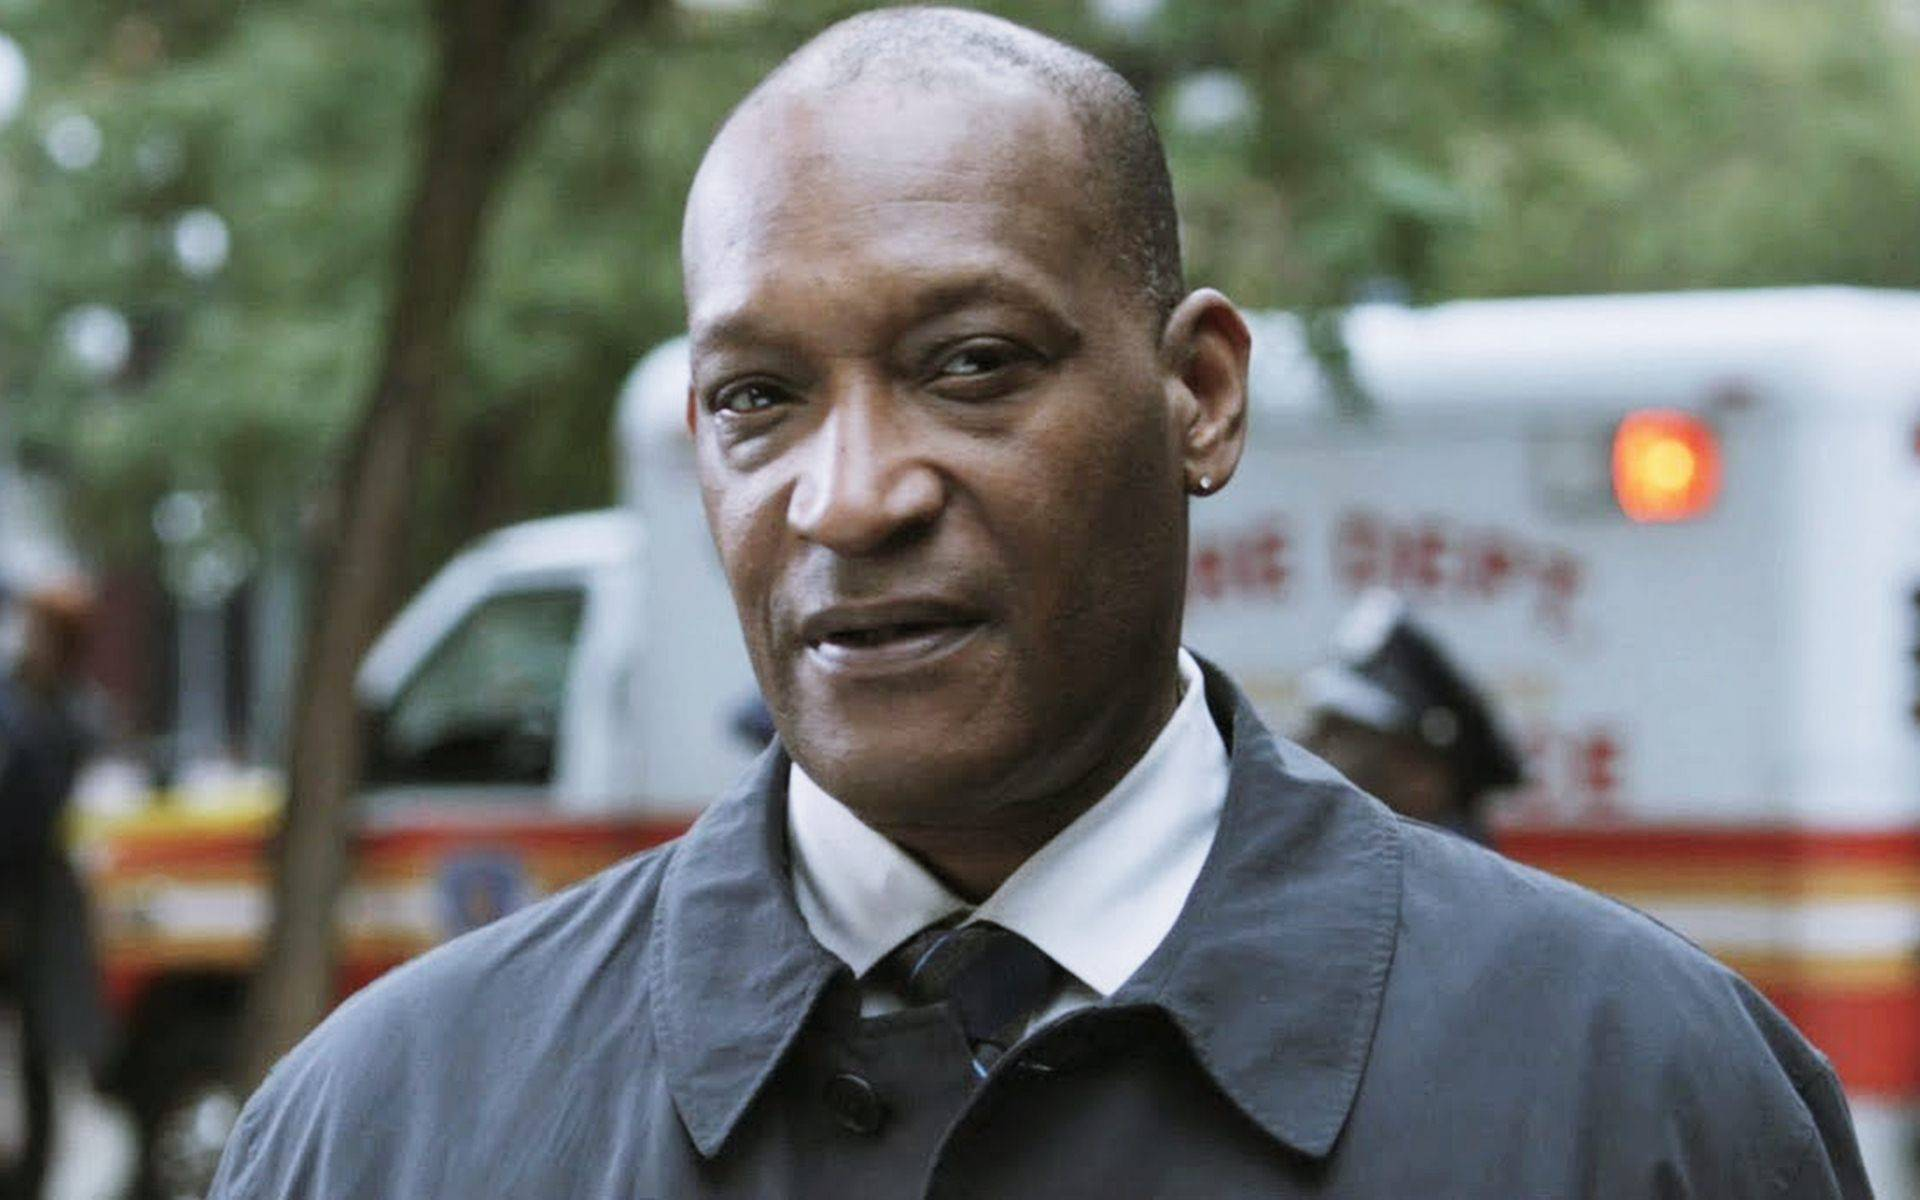 tony todd dotatony todd voice, tony todd dota, tony todd height, tony todd xena, tony todd zoom voice, tony todd interview, tony todd wikipedia, tony todd final destination 5, tony todd wiki, tony todd movies, tony todd criminal minds, tony todd girlfriend, tony todd final destination 3, tony todd wife, tony todd, tony todd imdb, tony todd zoom, tony todd candyman, tony todd star trek, tony todd the flash